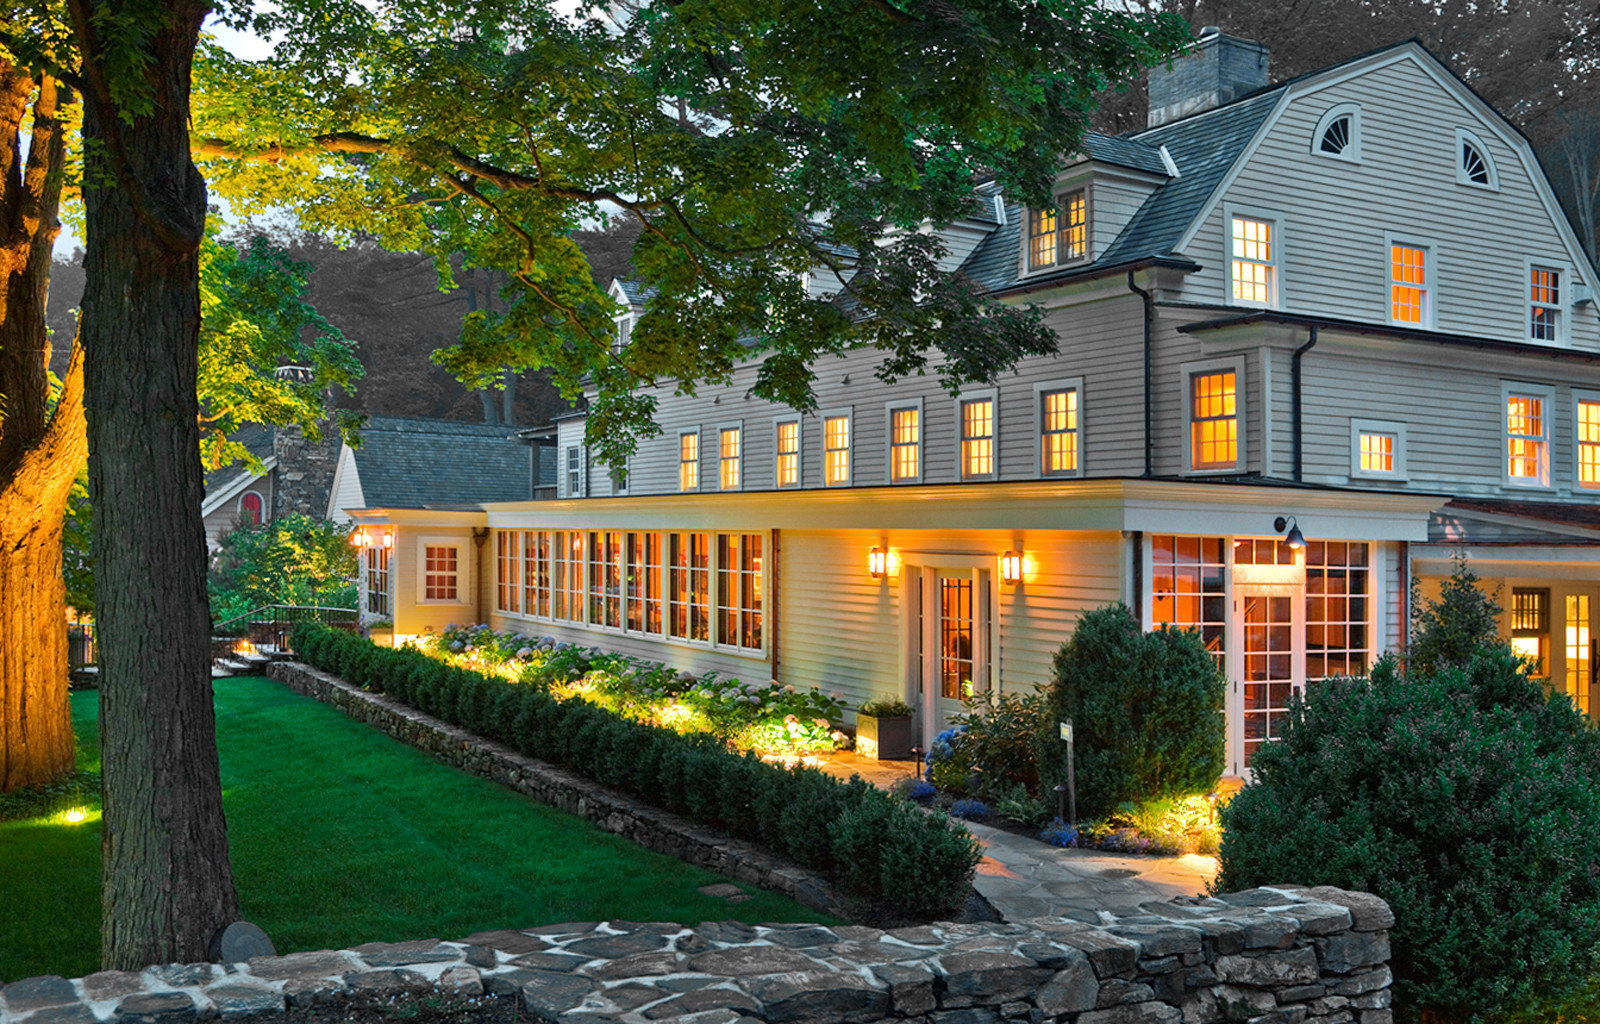 Country Exterior Inn Luxury Modern tree grass house property home building residential area neighbourhood Architecture backyard mansion cottage lawn yard Garden Courtyard Villa farmhouse manor house outdoor structure residential stone